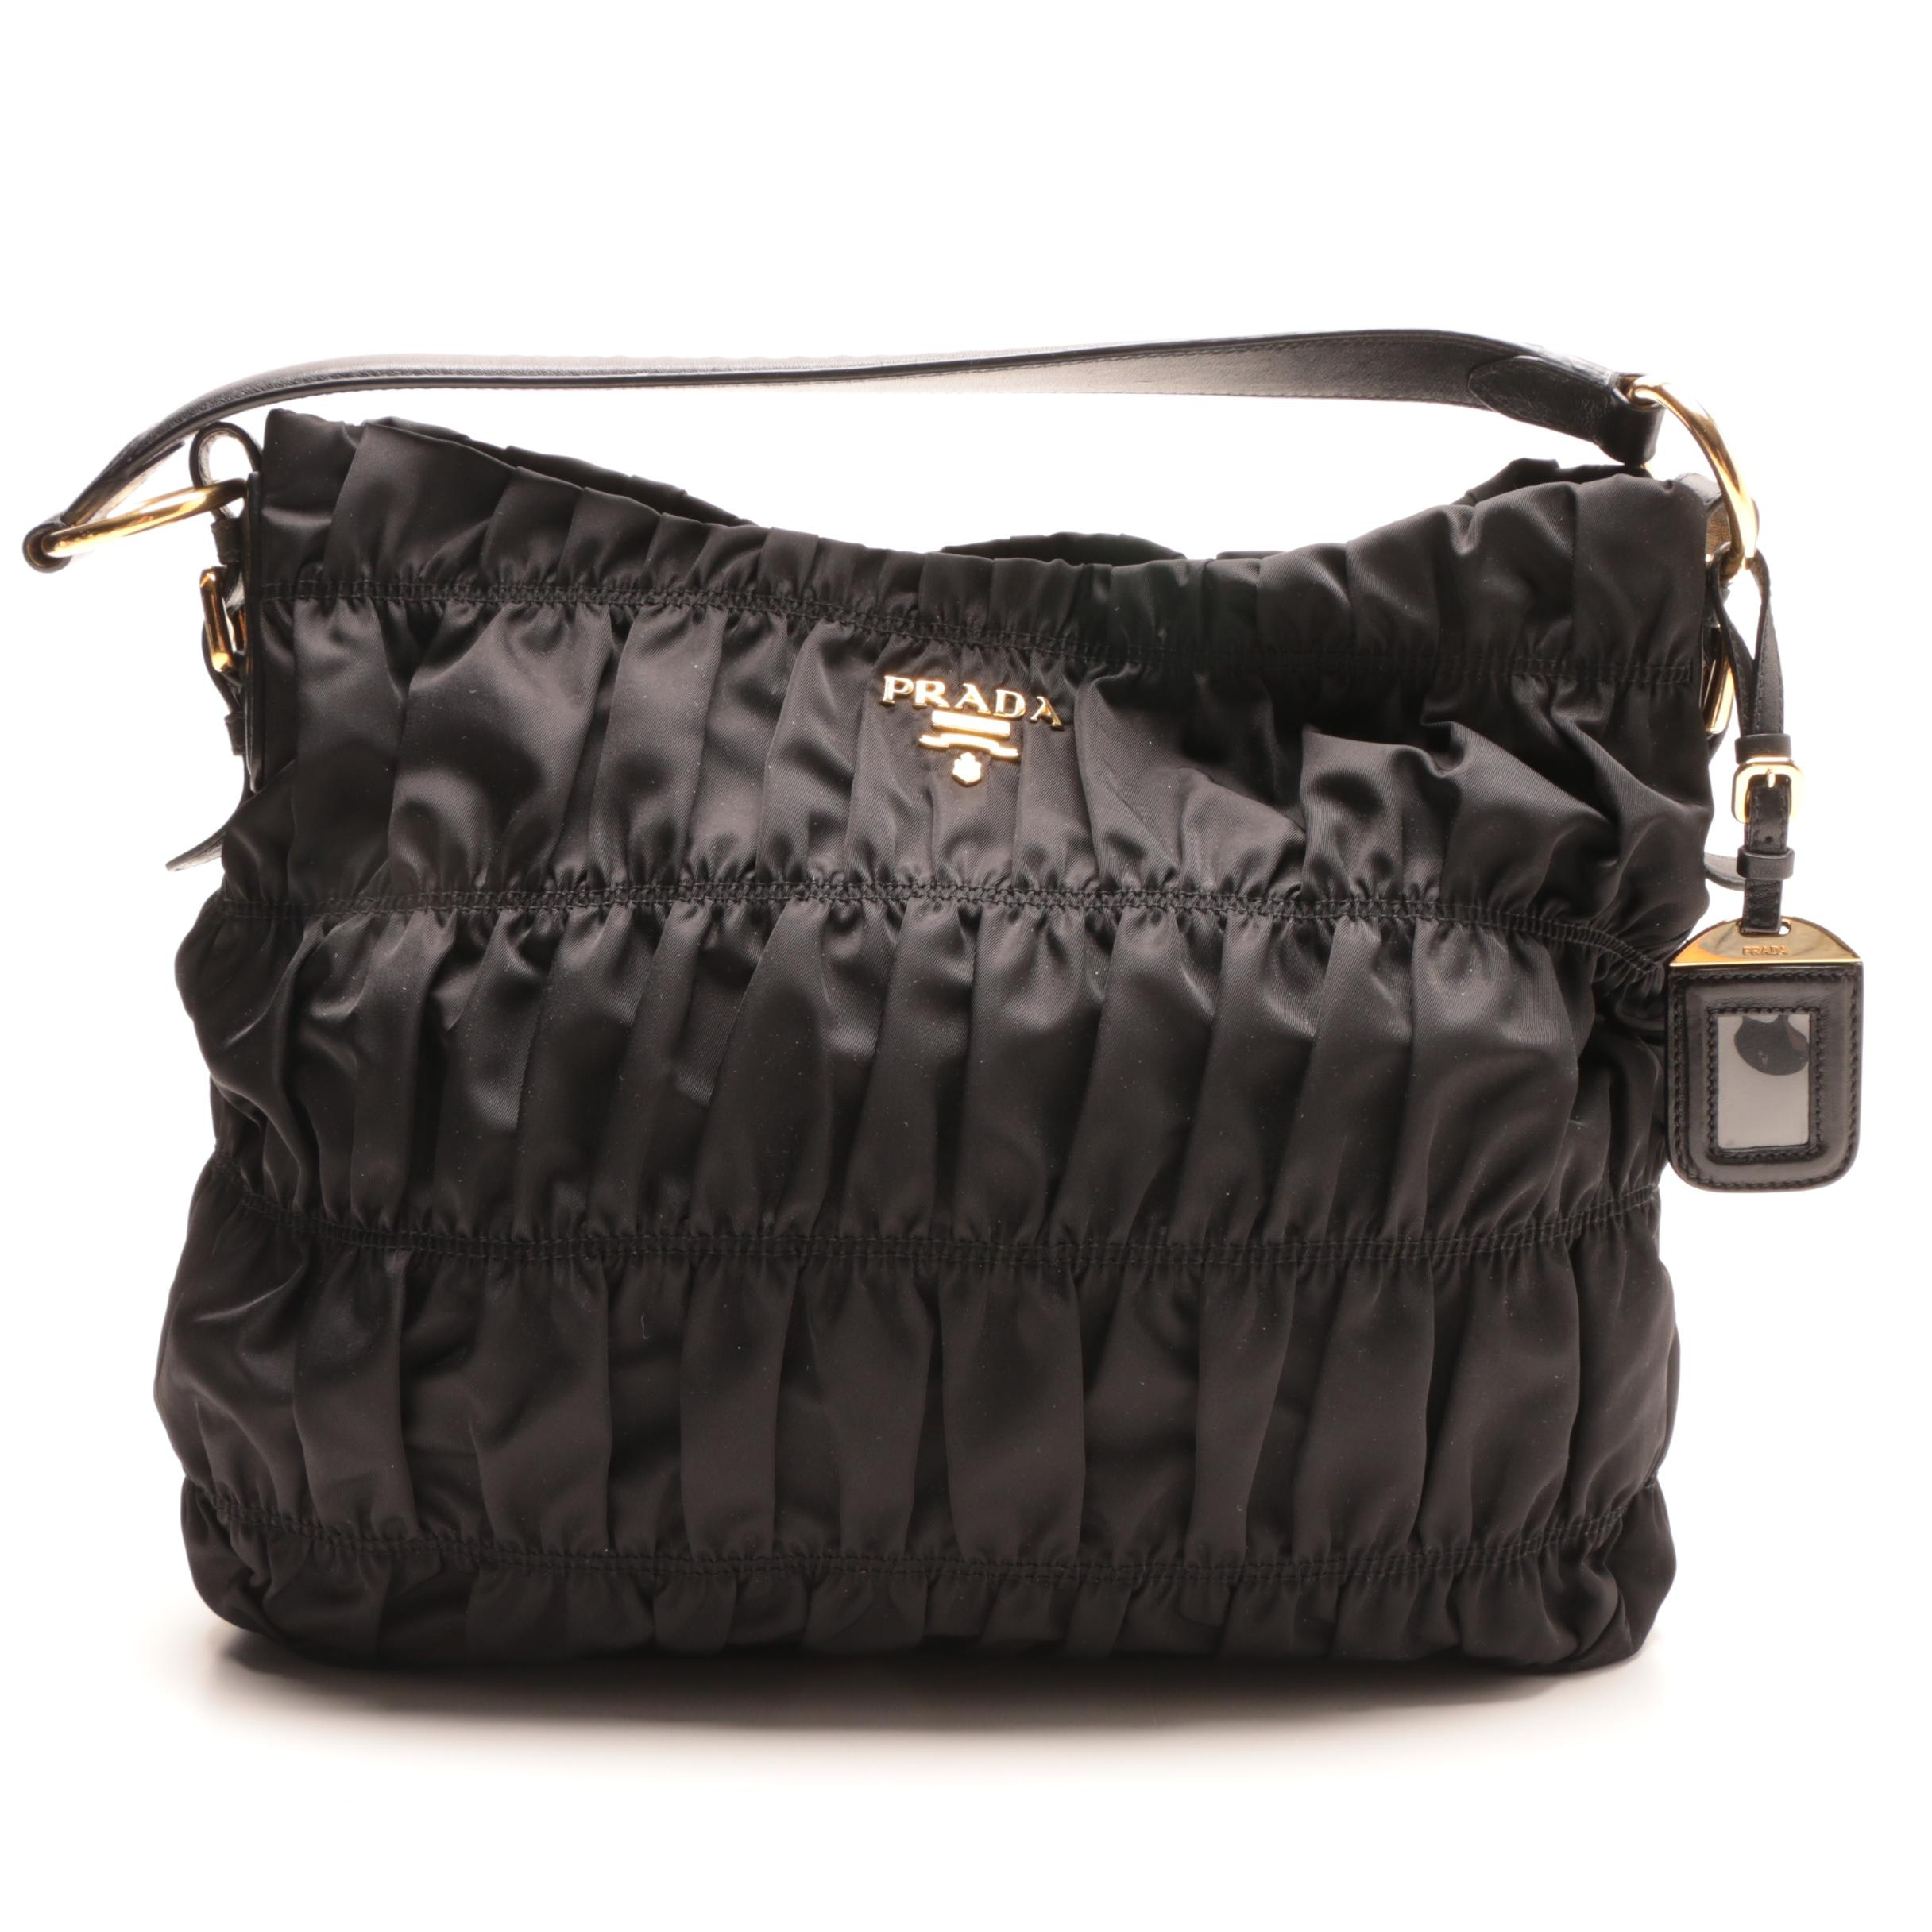 Prada Black Ruched Nylon Shoulder Bag